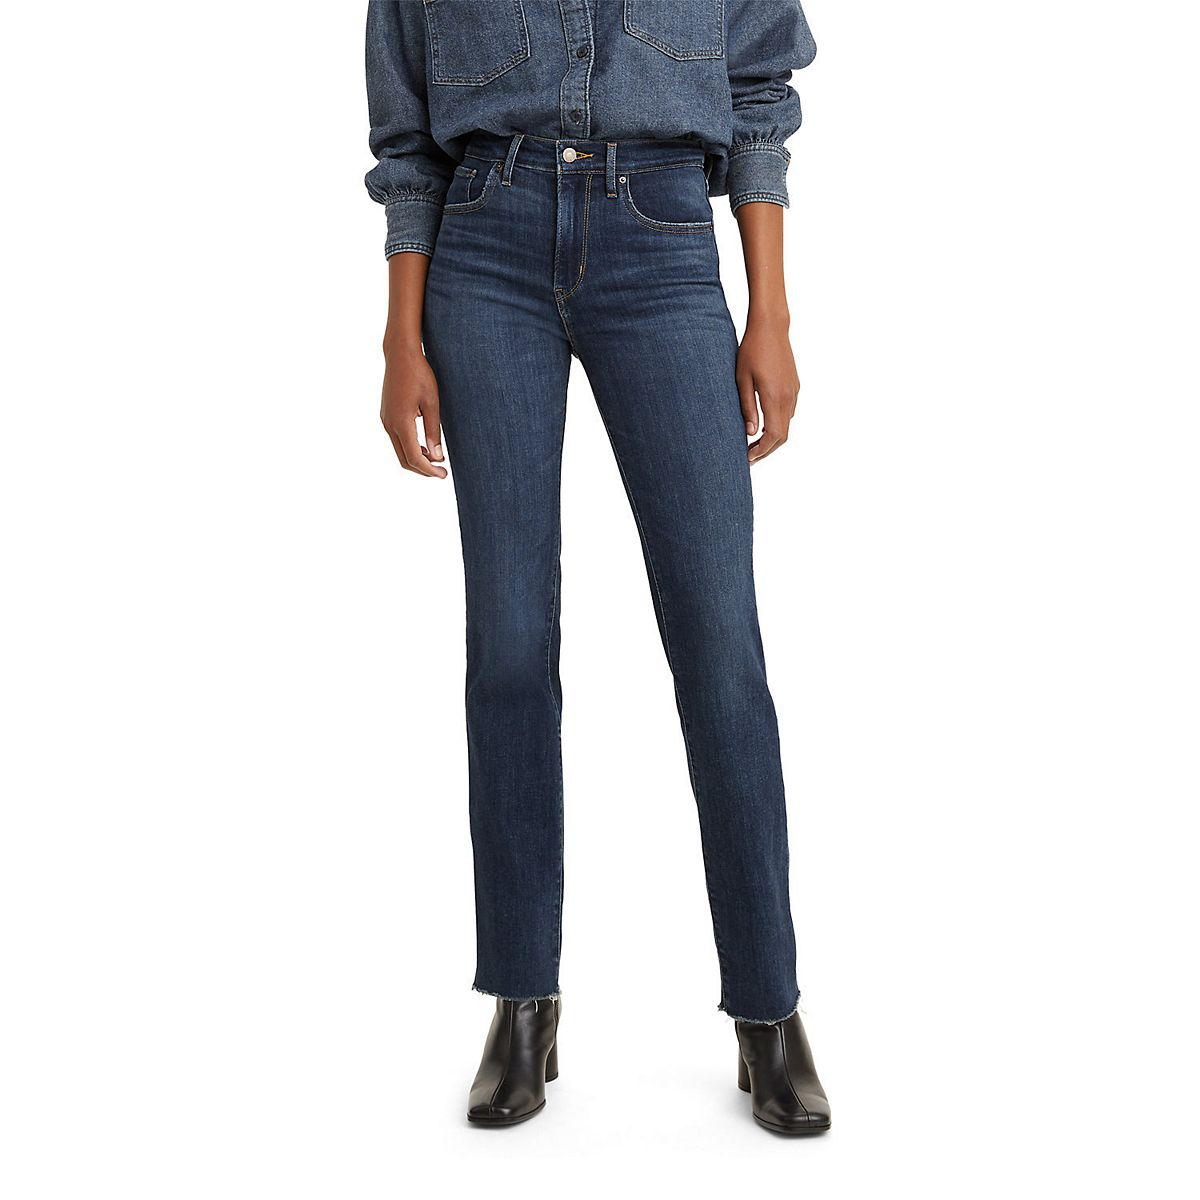 Women's Levi's® 724 High-Waisted Straight-Leg Jeans (Was $69.50, Now $41.70)